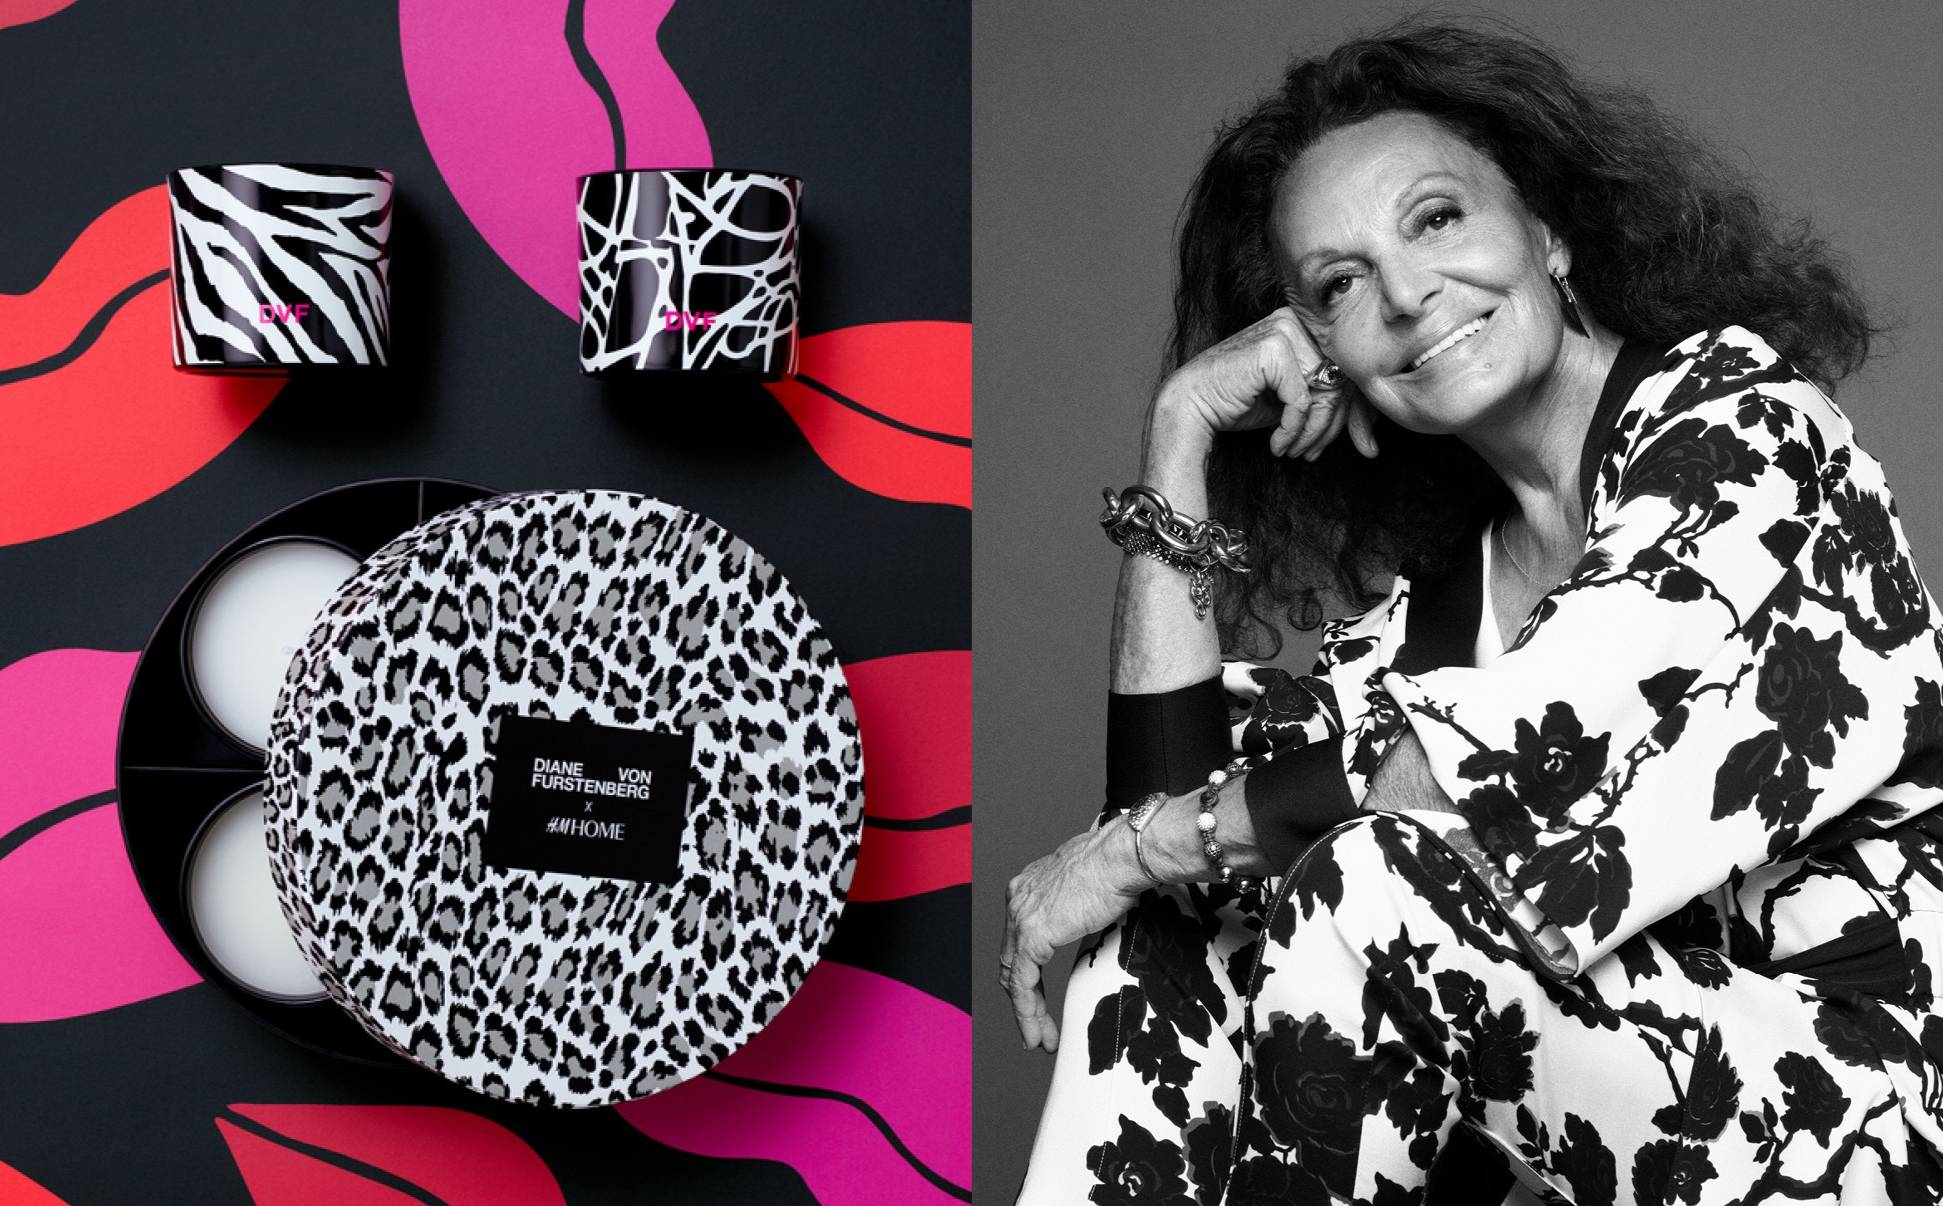 Diane von Furstenberg's interior collection for H&M Home launches